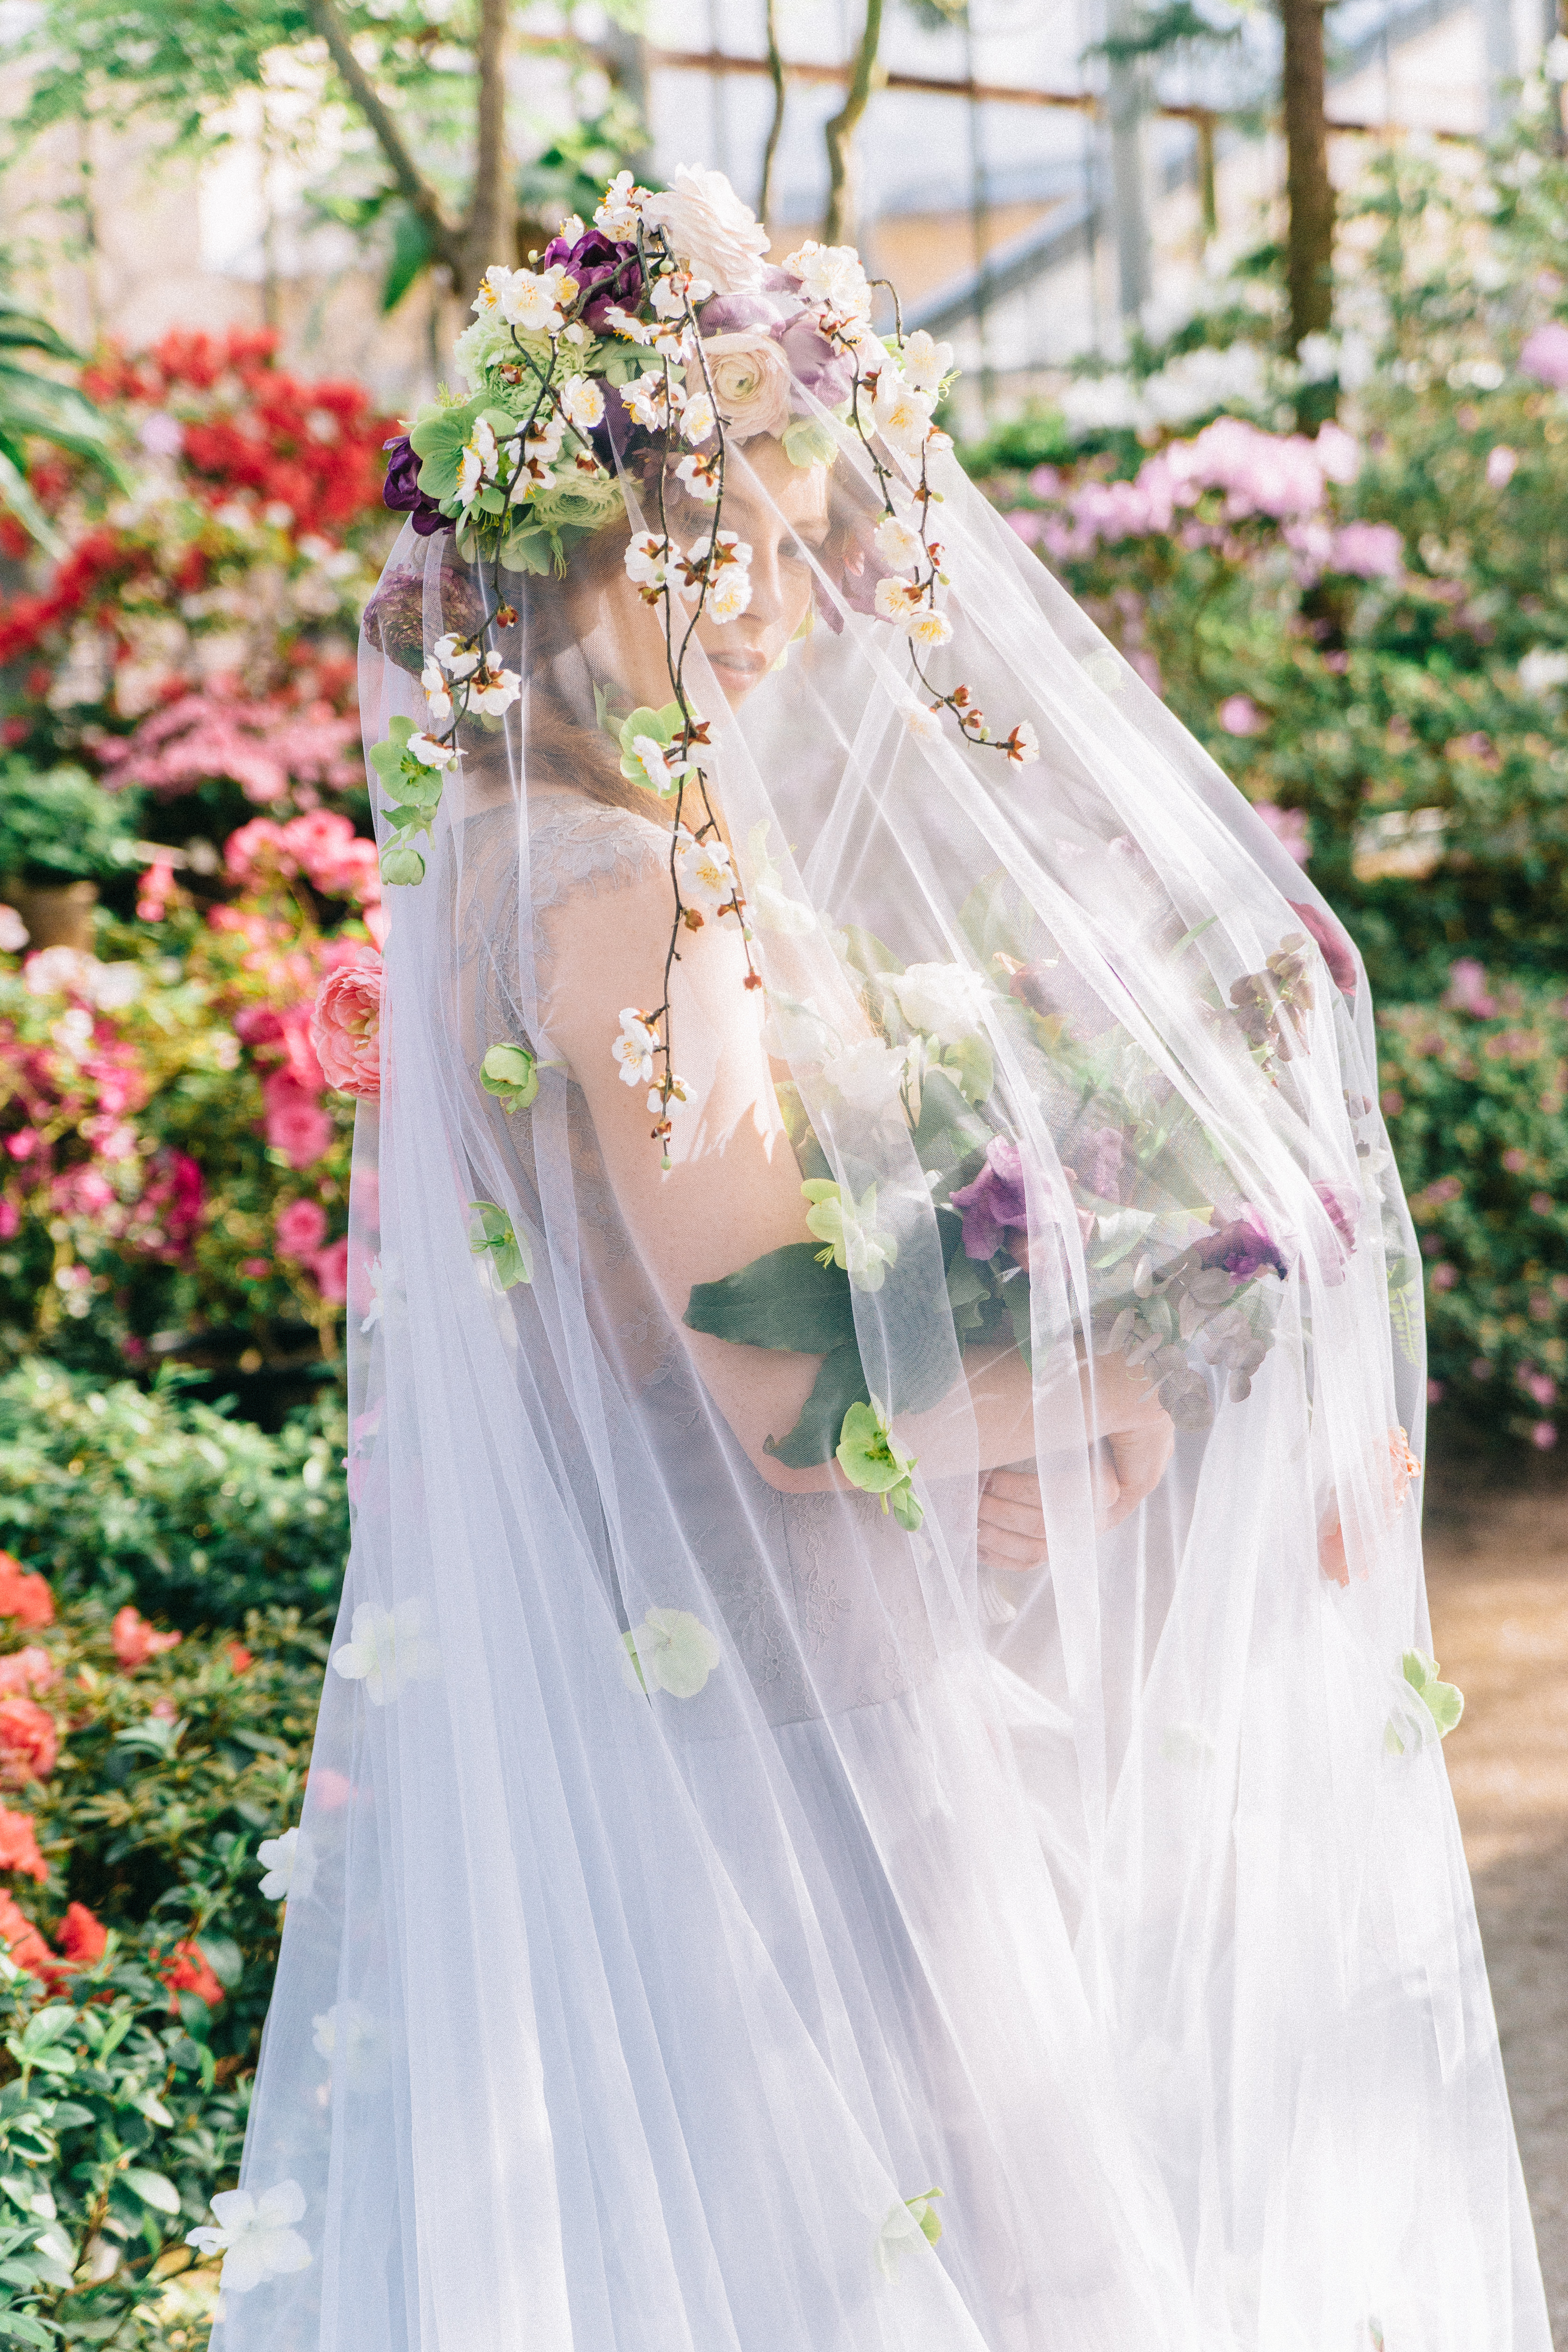 bride wearing veil with fresh flowers and flower crown